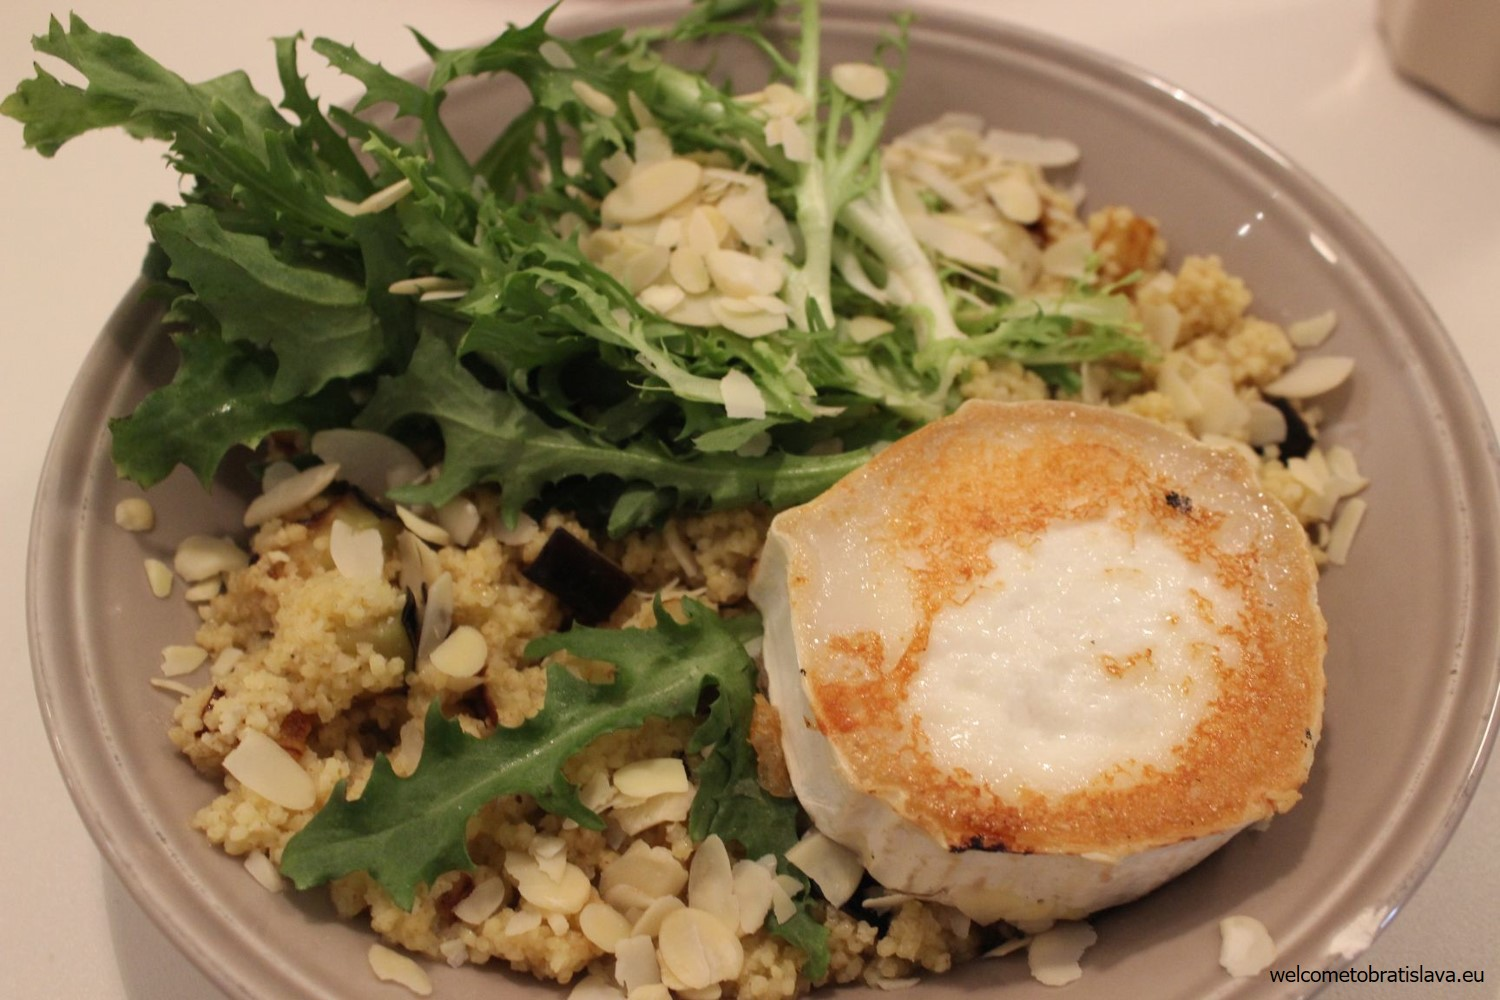 Millet with grilled goat cheese